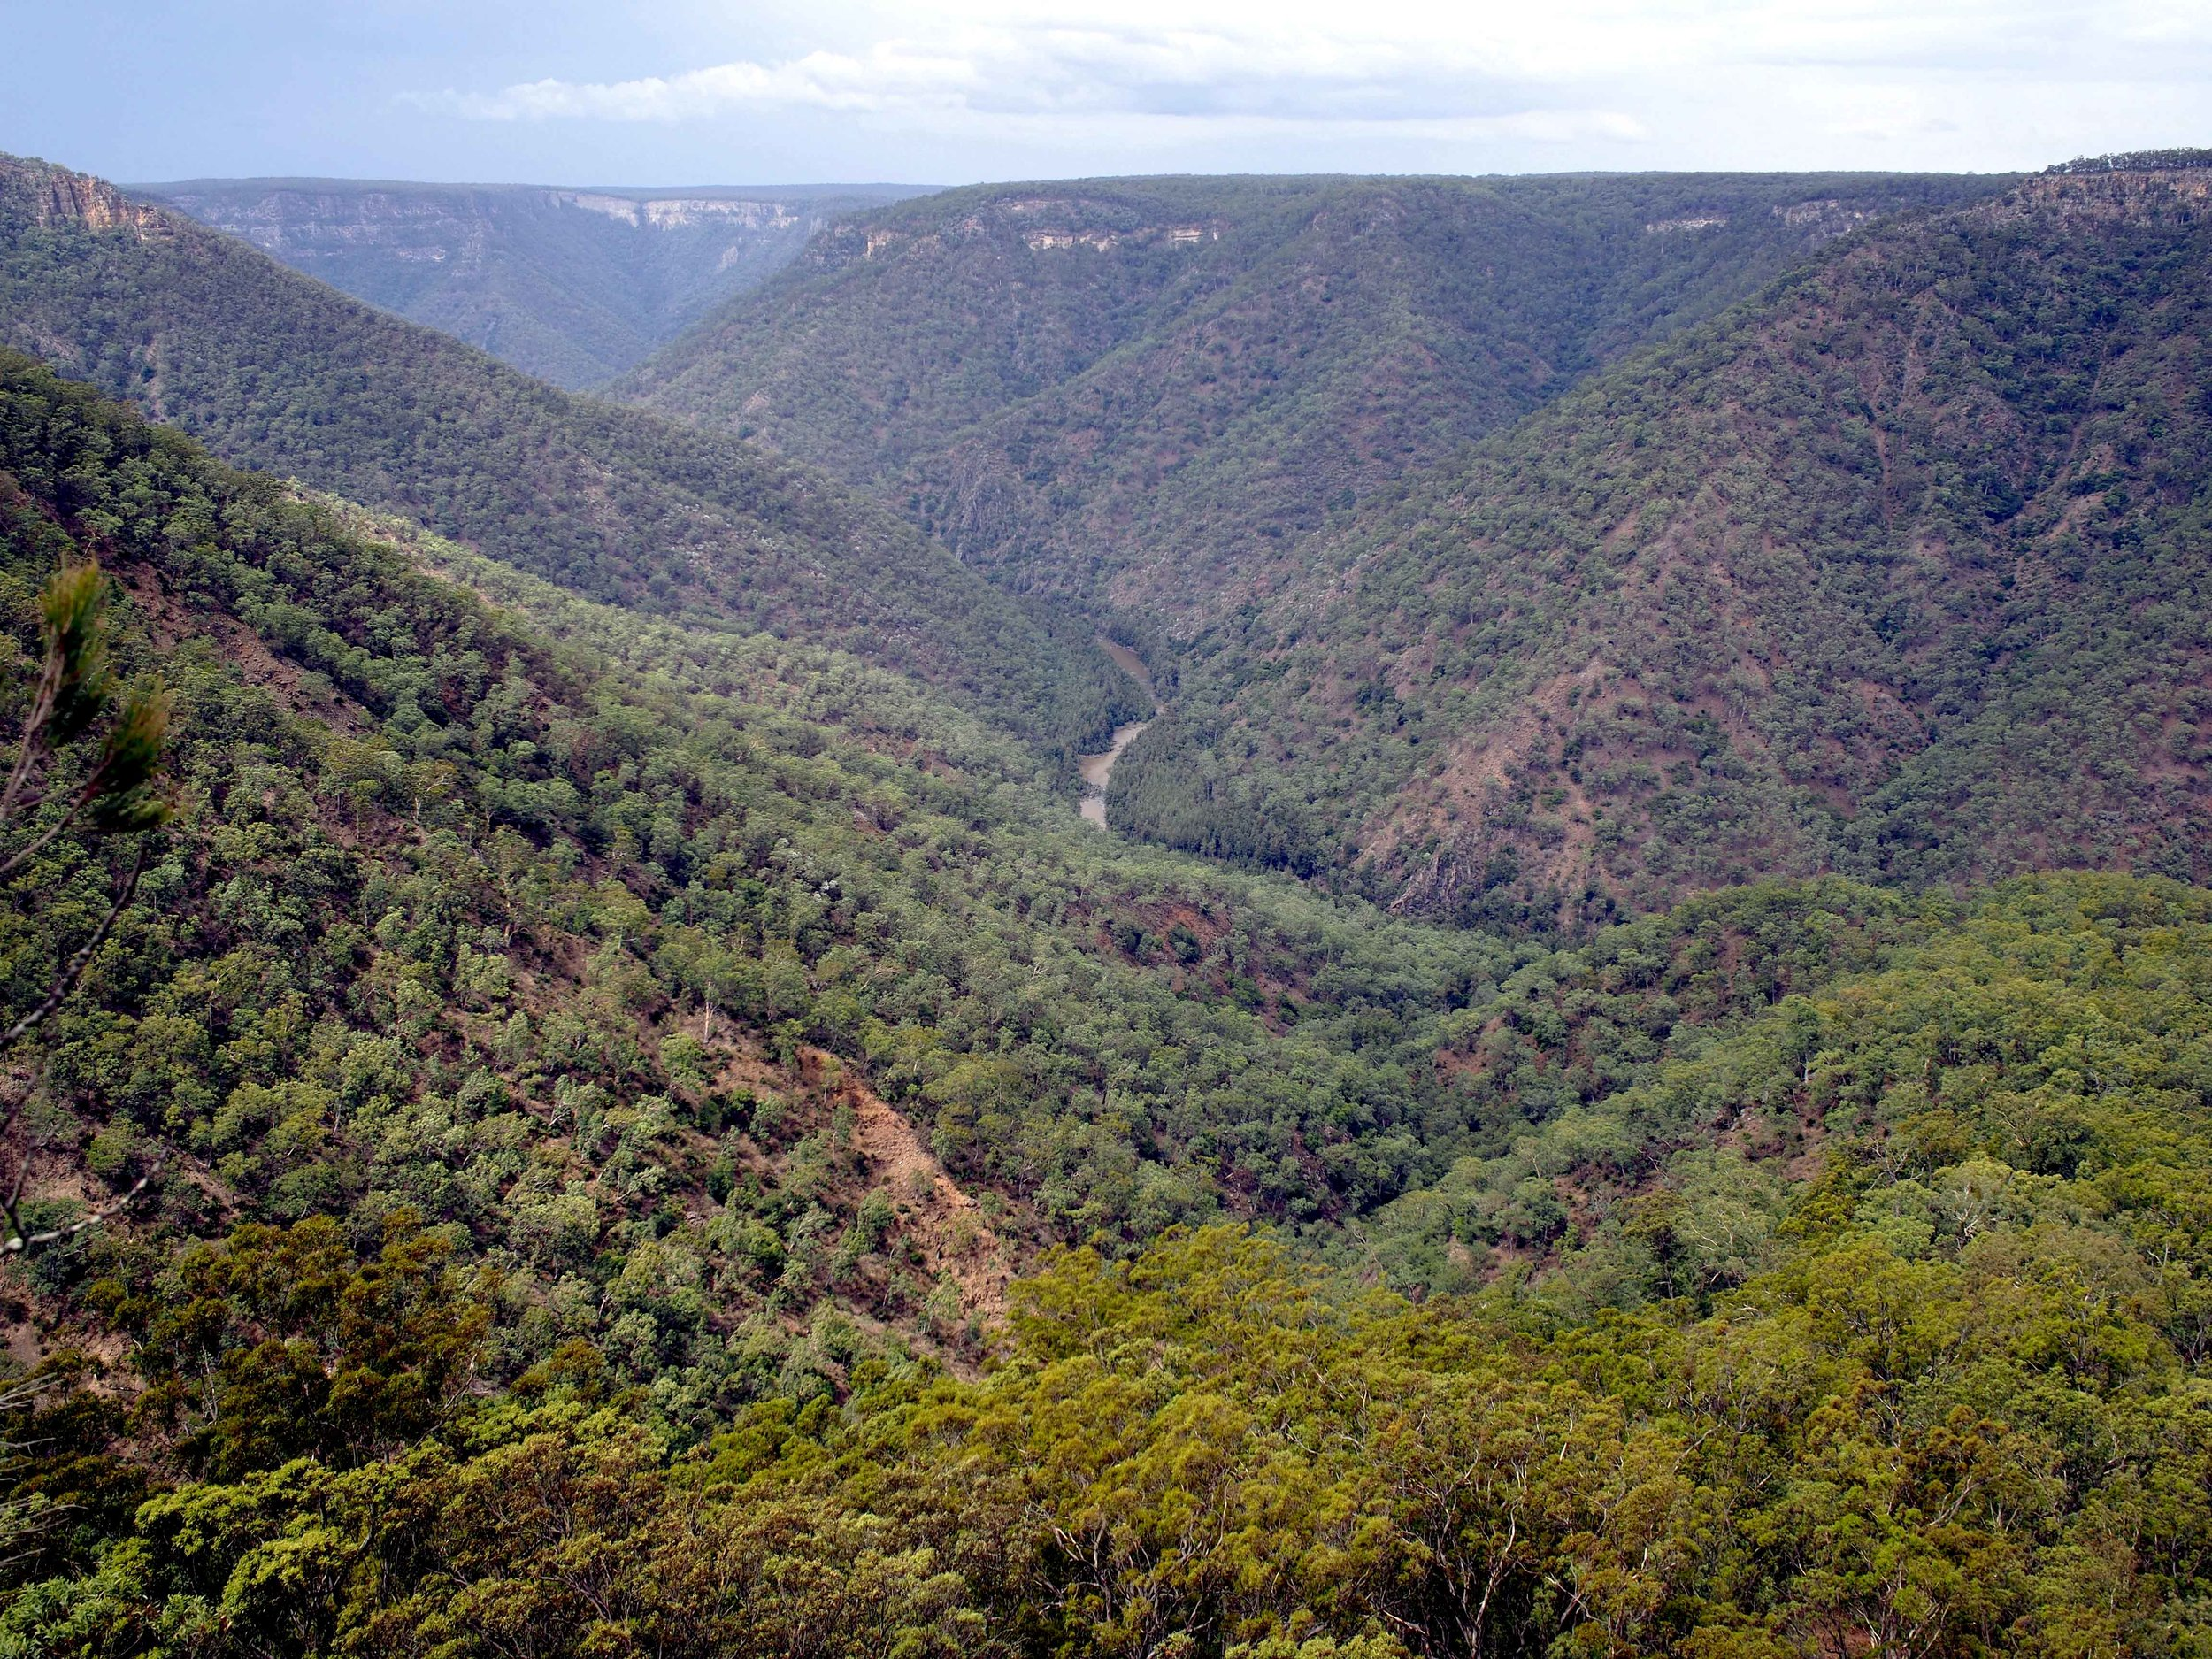 View of the Shoalhaven Gorge from Longpoint lookout near Tallong, NSW